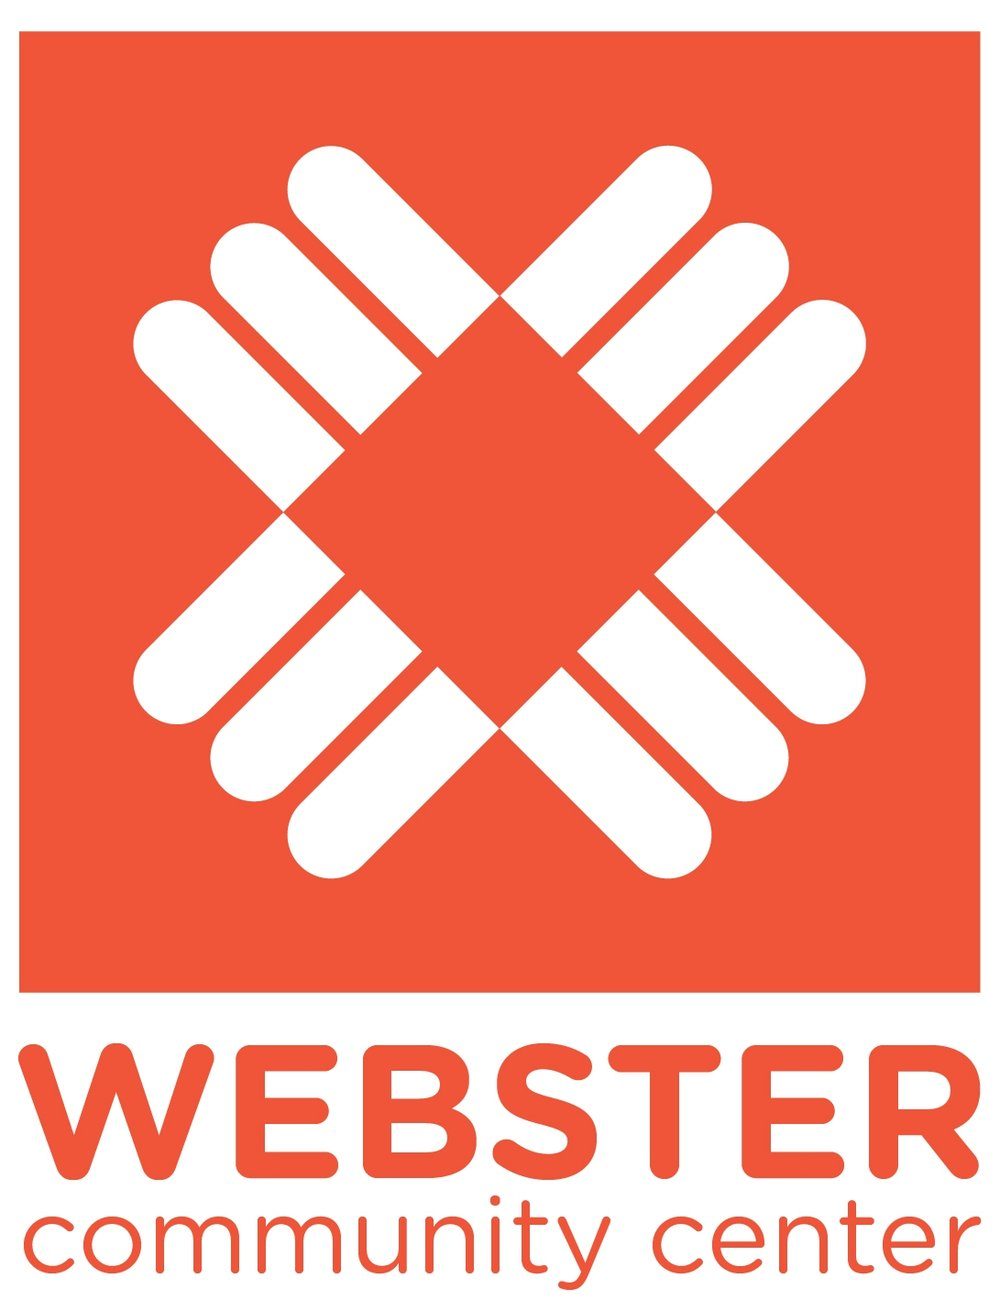 Webster Community Center logo designed by Piper Lehto, Zak Plaxton and Elizabeth Suchocki.